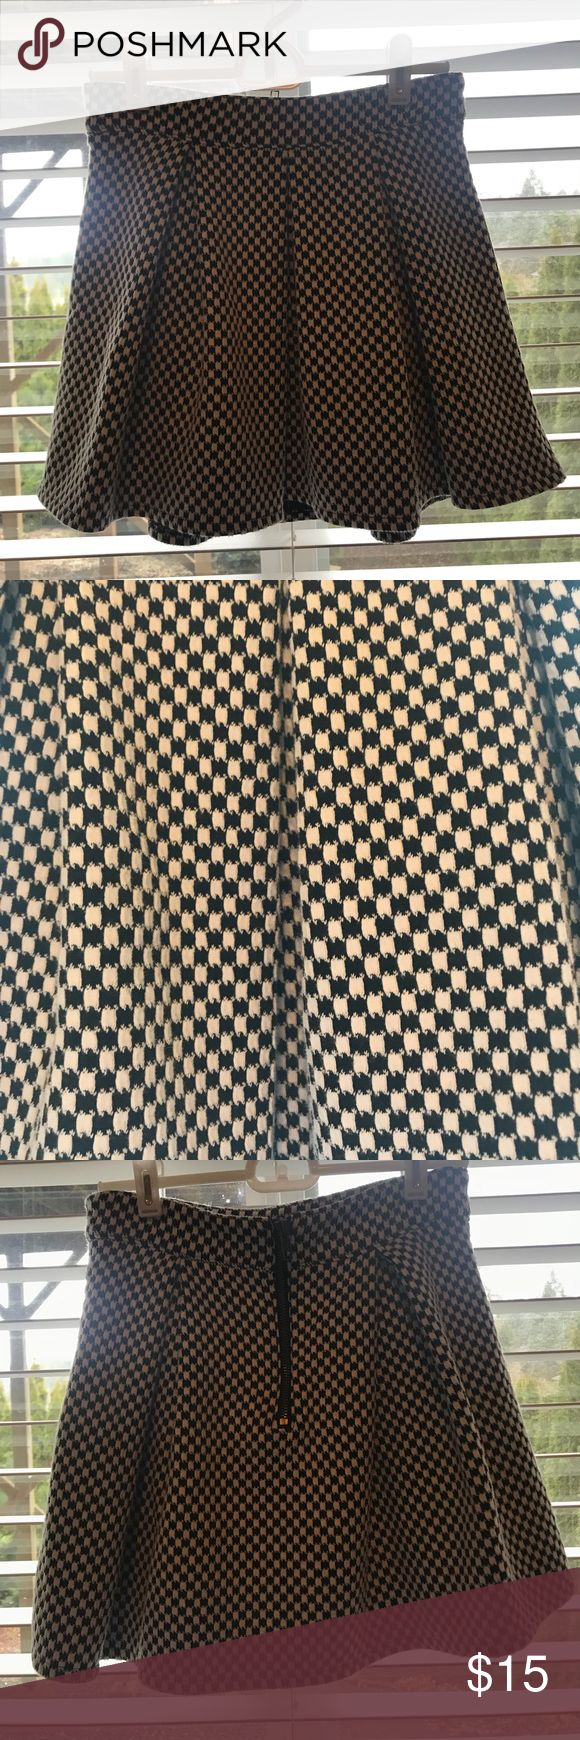 Checkered Black And White Houndstooth Skirt A cute mini skirt with houndstooth pattern on it. It zips up in the back. Aeropostale Skirts Mini